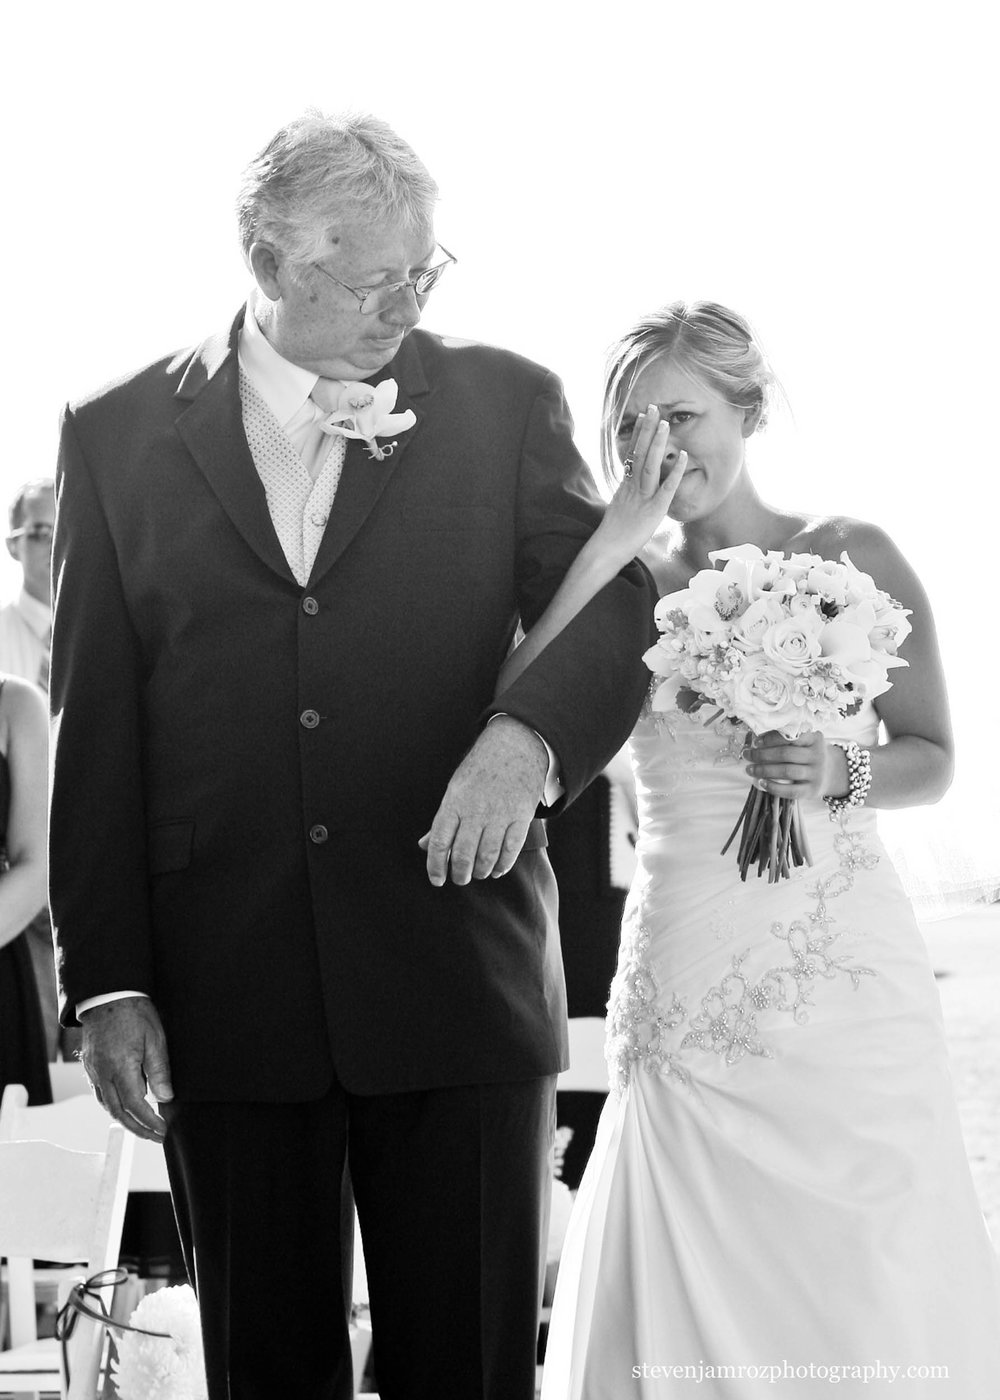 father-bride-wedding-in-raleigh-steven-jamroz-photography-0264.jpg